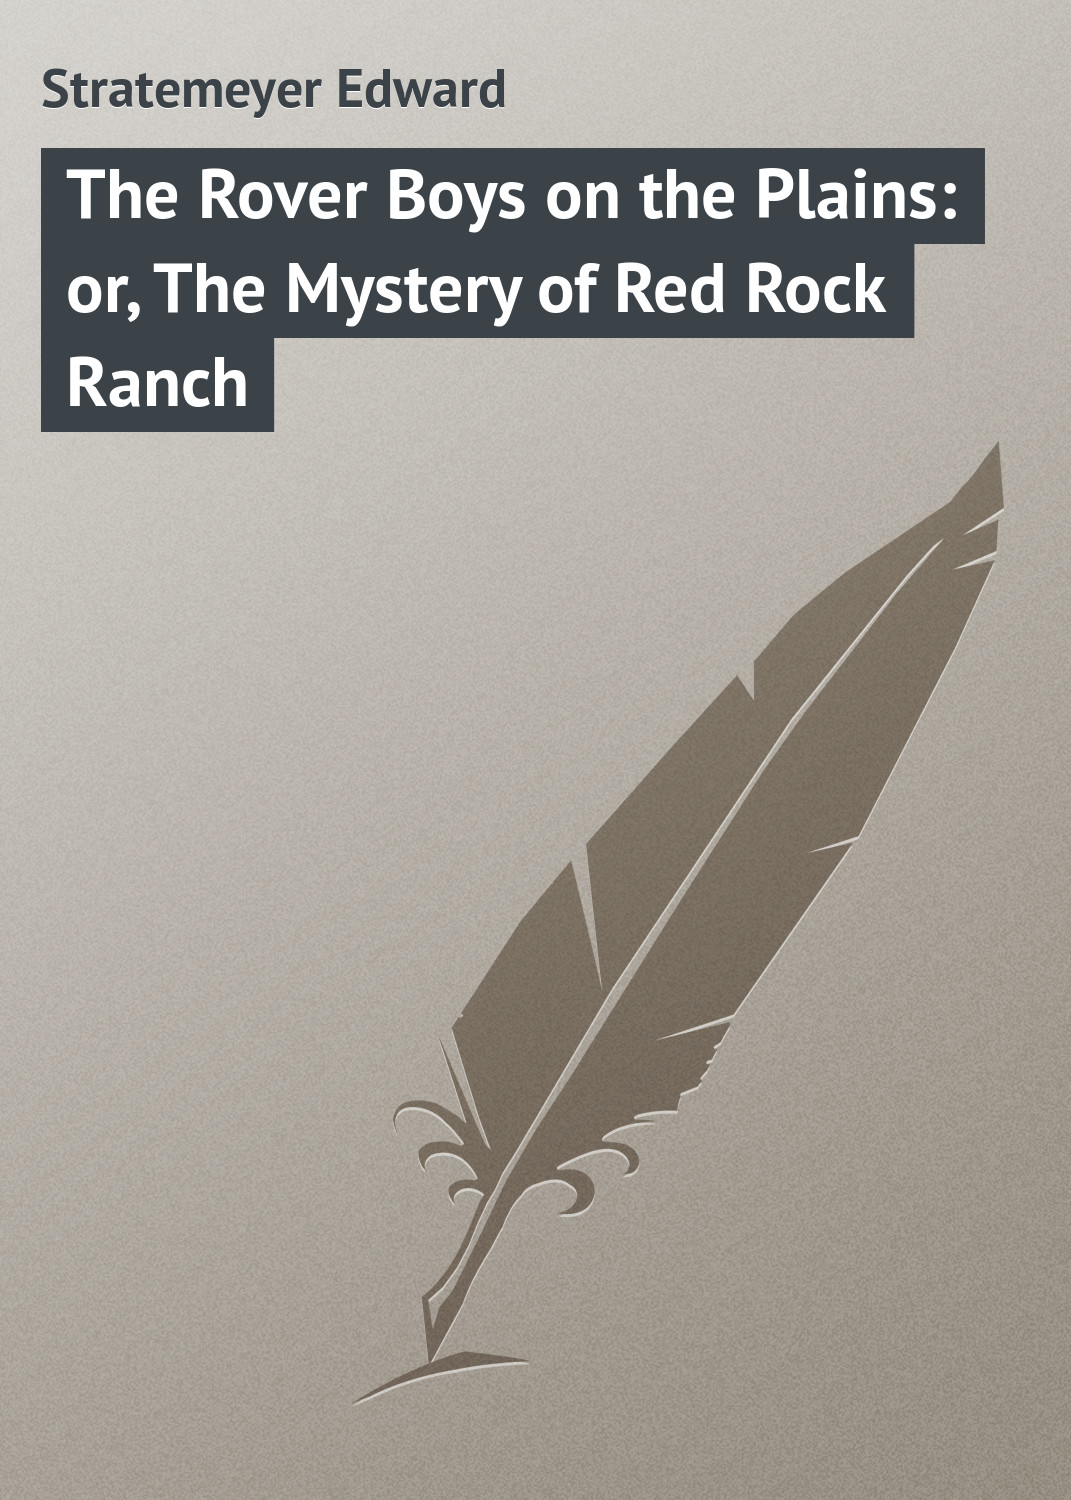 Stratemeyer Edward The Rover Boys on the Plains: or, The Mystery of Red Rock Ranch